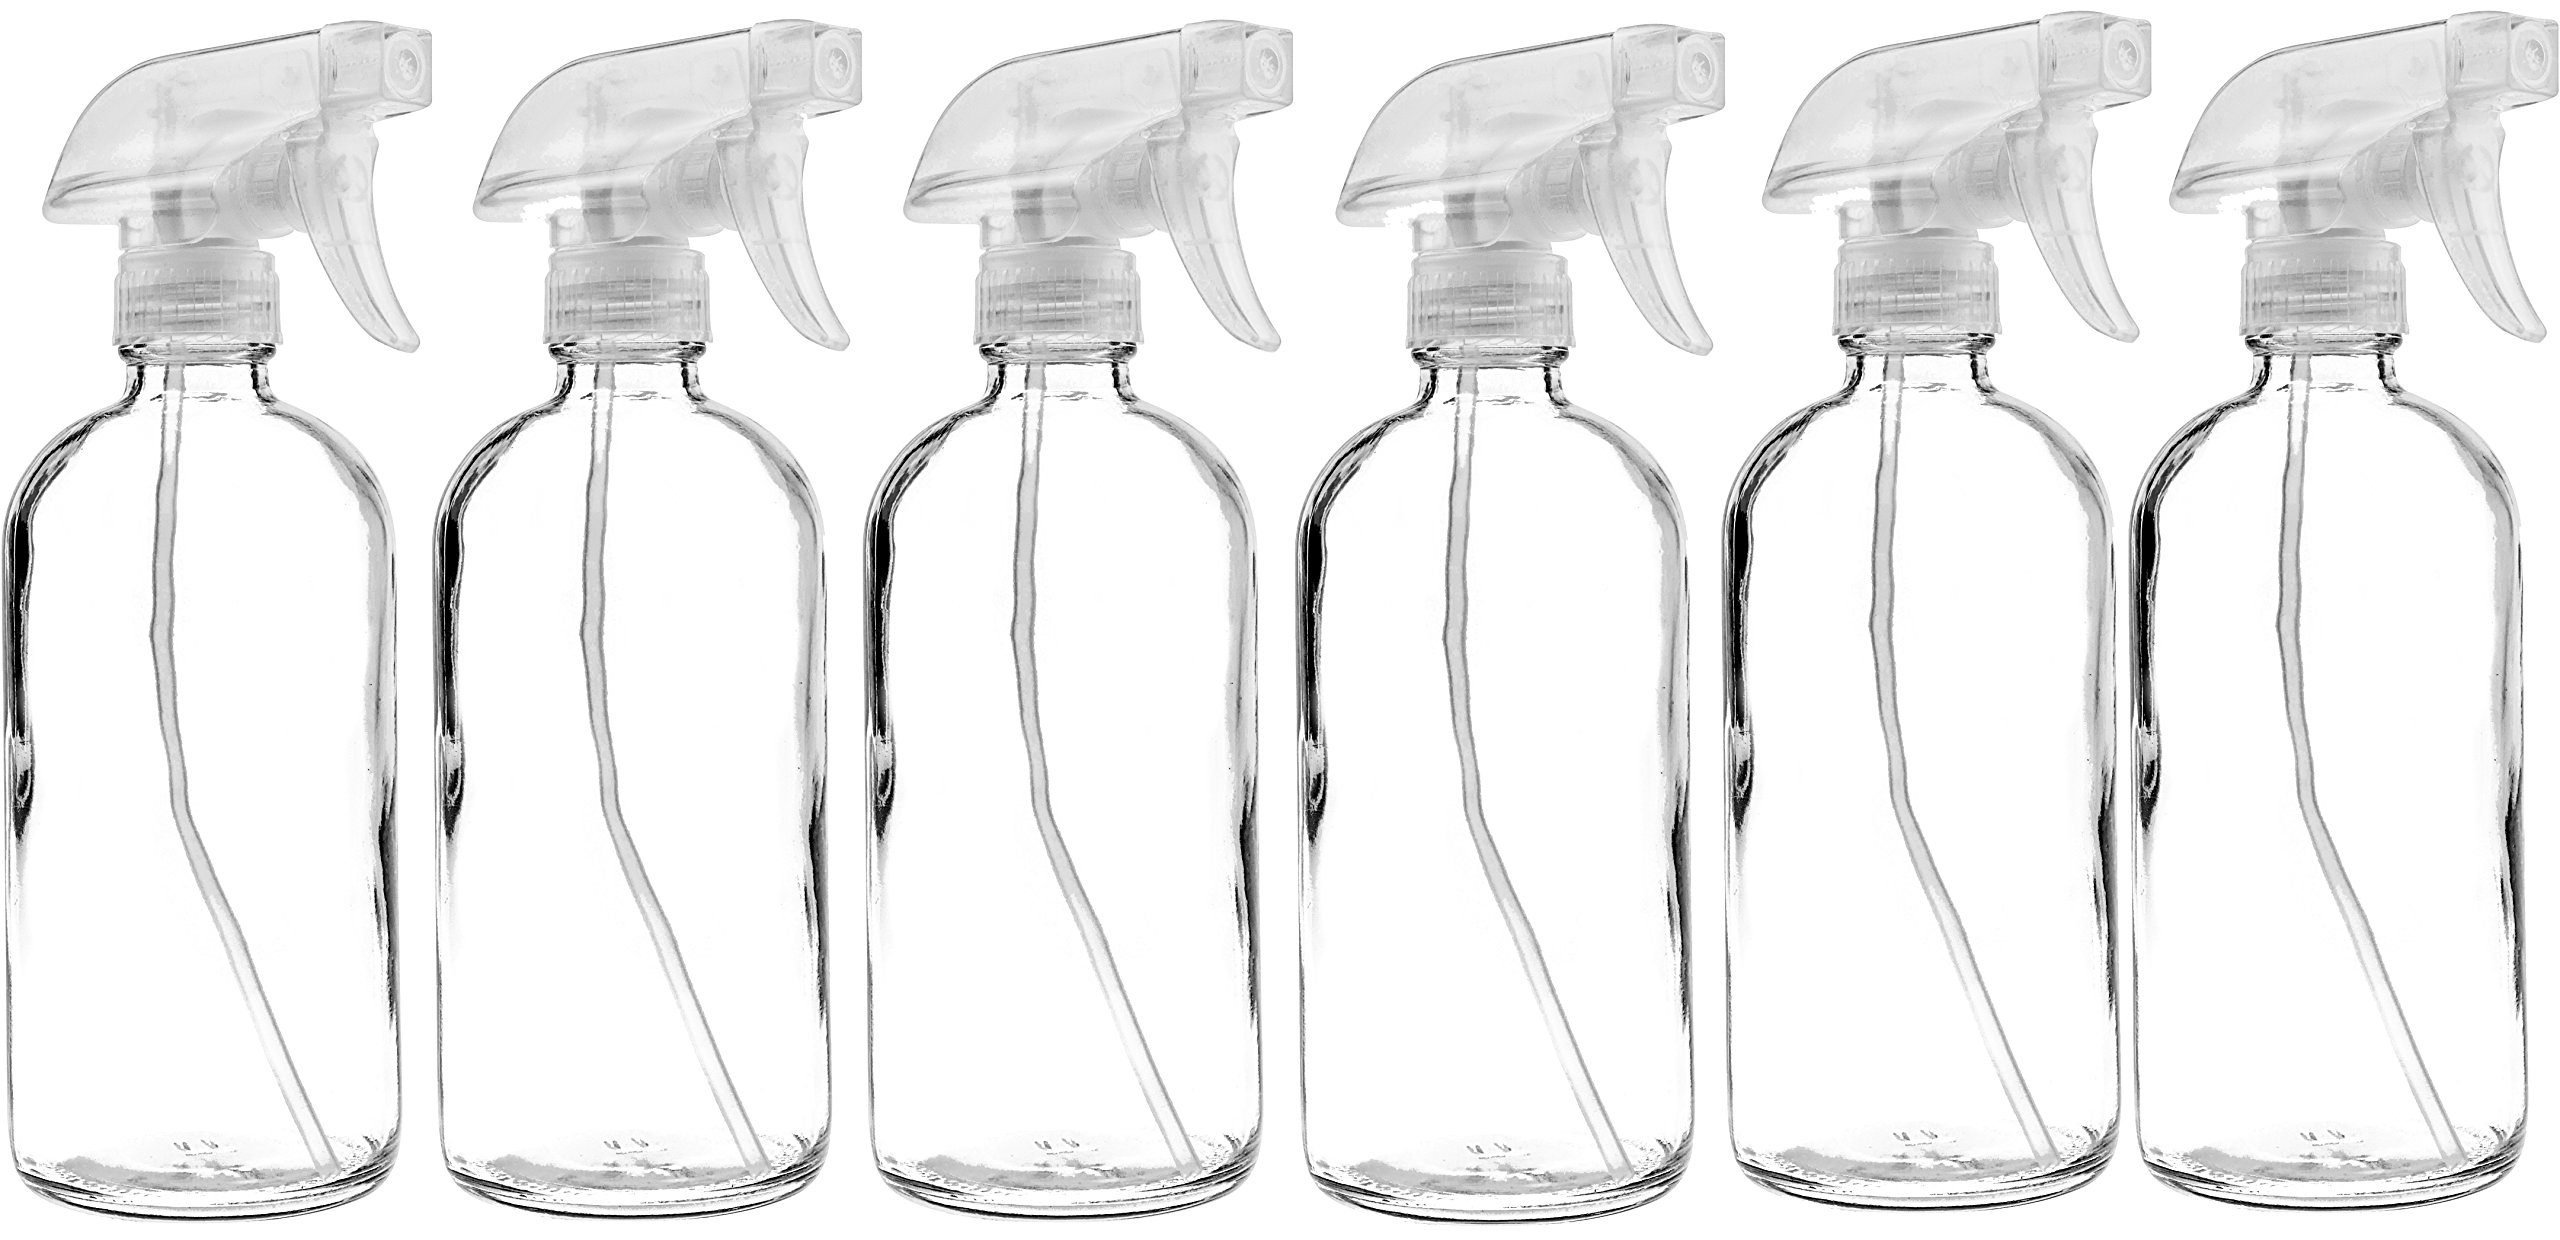 6 Pack of 16 oz Refillable Clear Glass Spray Bottles - Reusable Containers with Adjustable Sprayer: Misting & Stream - for Essential Oils, Cosmetics, Cleaning Products, Plants, Cooking, Aromatherapy by Sally's Organics